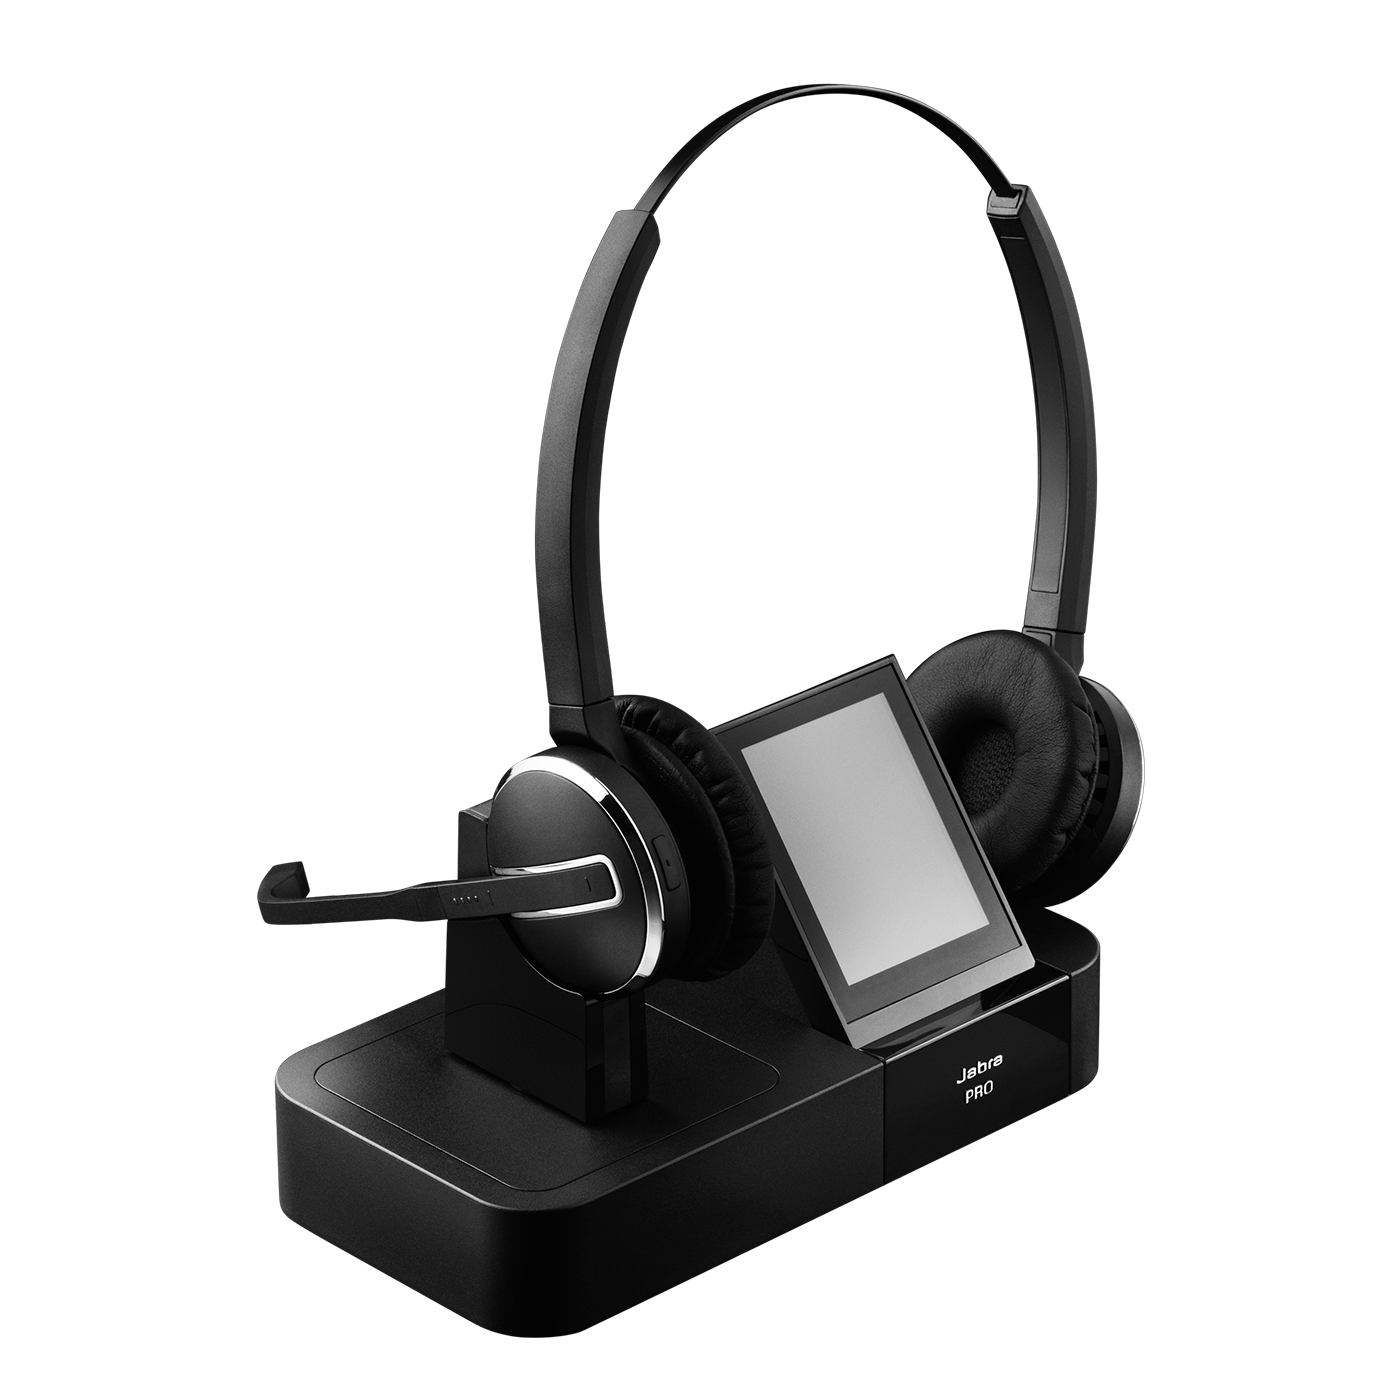 Jabra Pro GO 6470 Bluetooth headset with phone dock